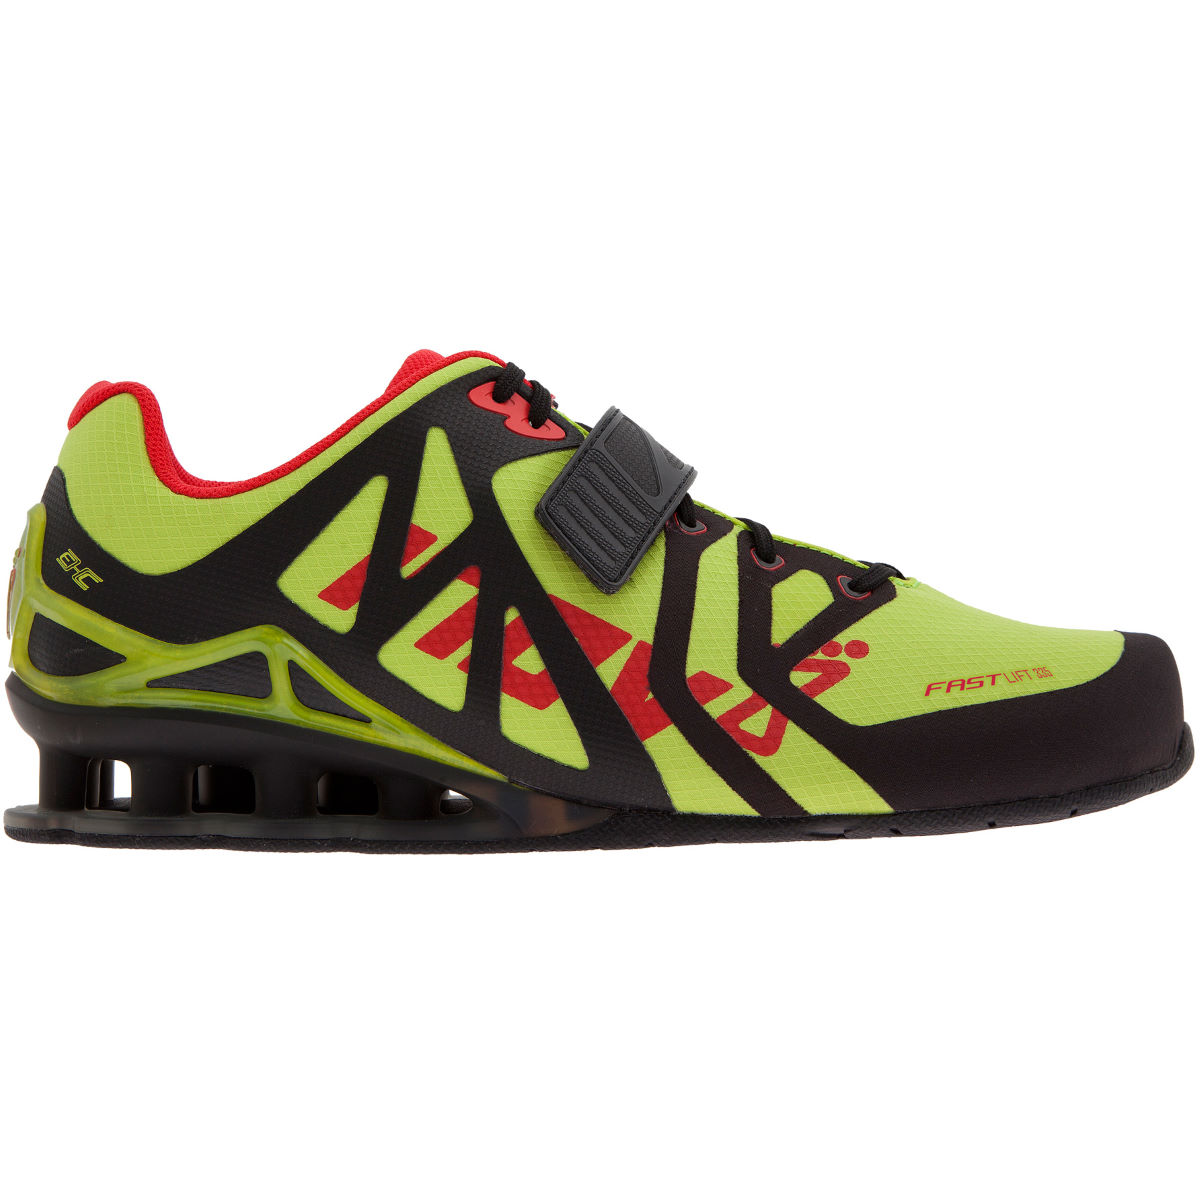 Inov-8 Fast Lift 335 Shoes - AW14